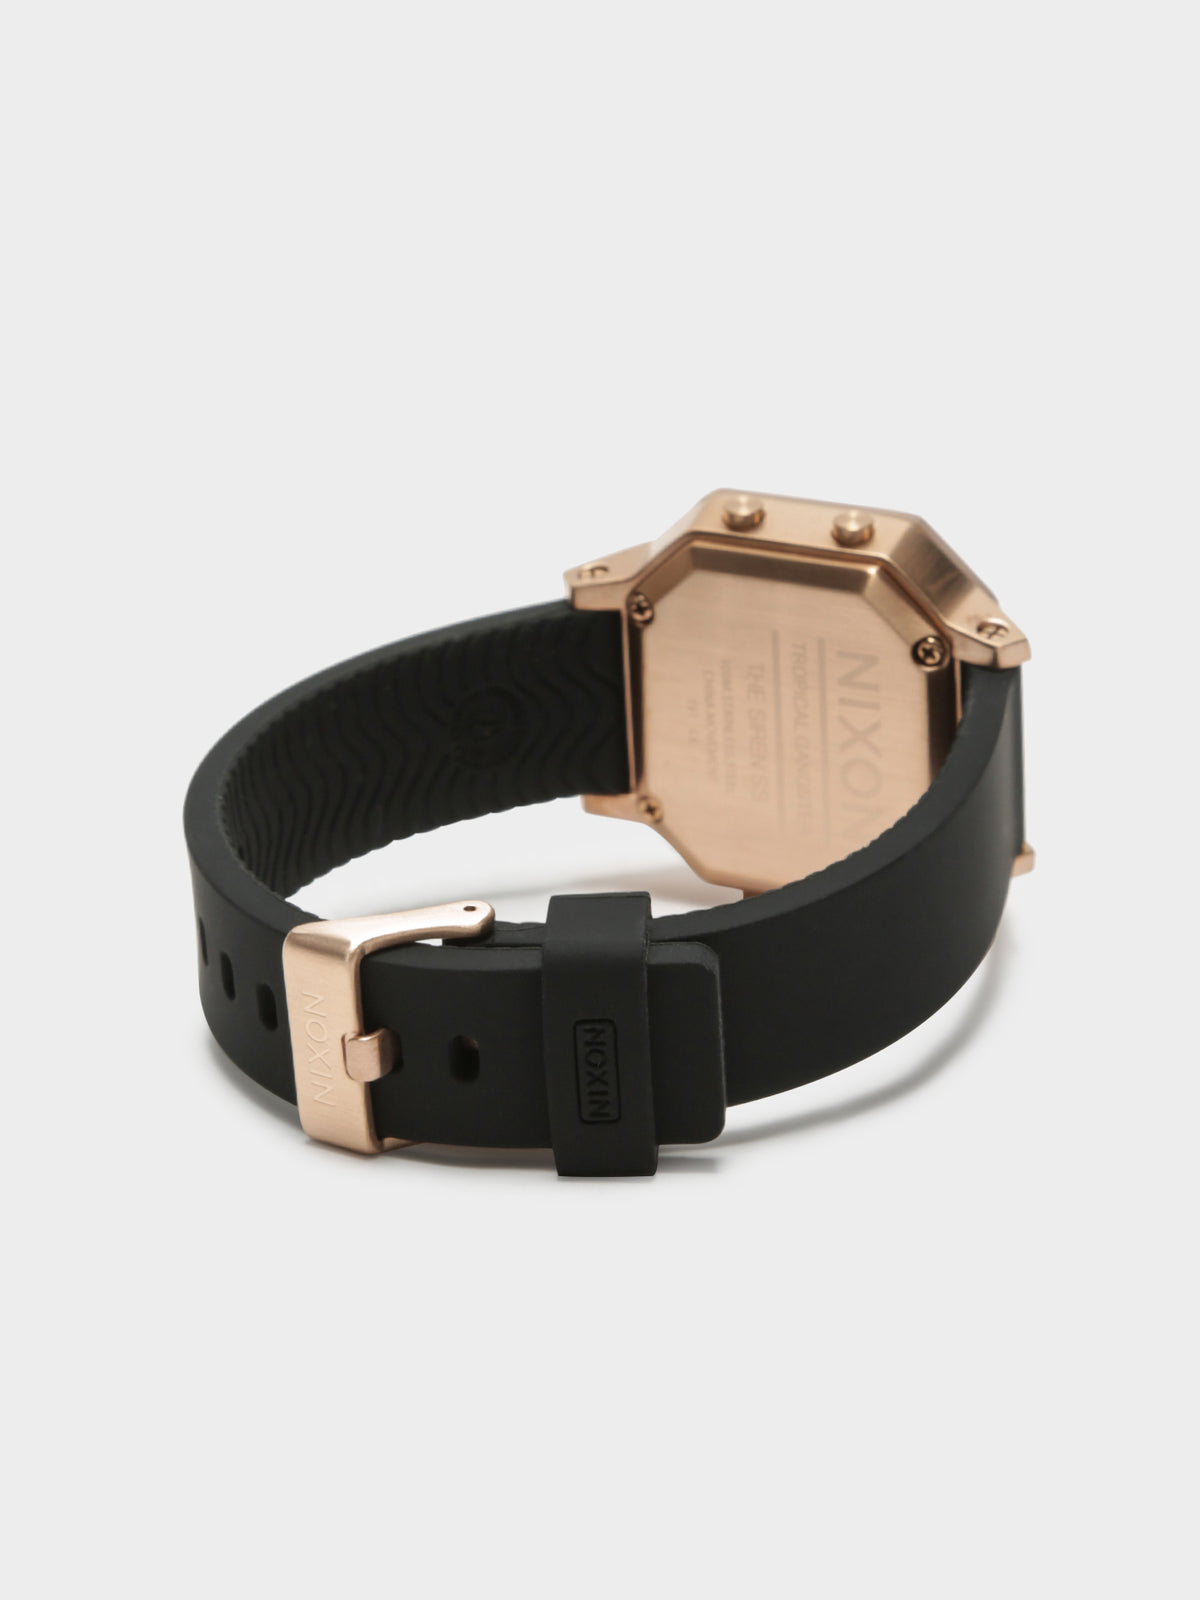 Siren SS Digital Watch in Rose Gold & Black